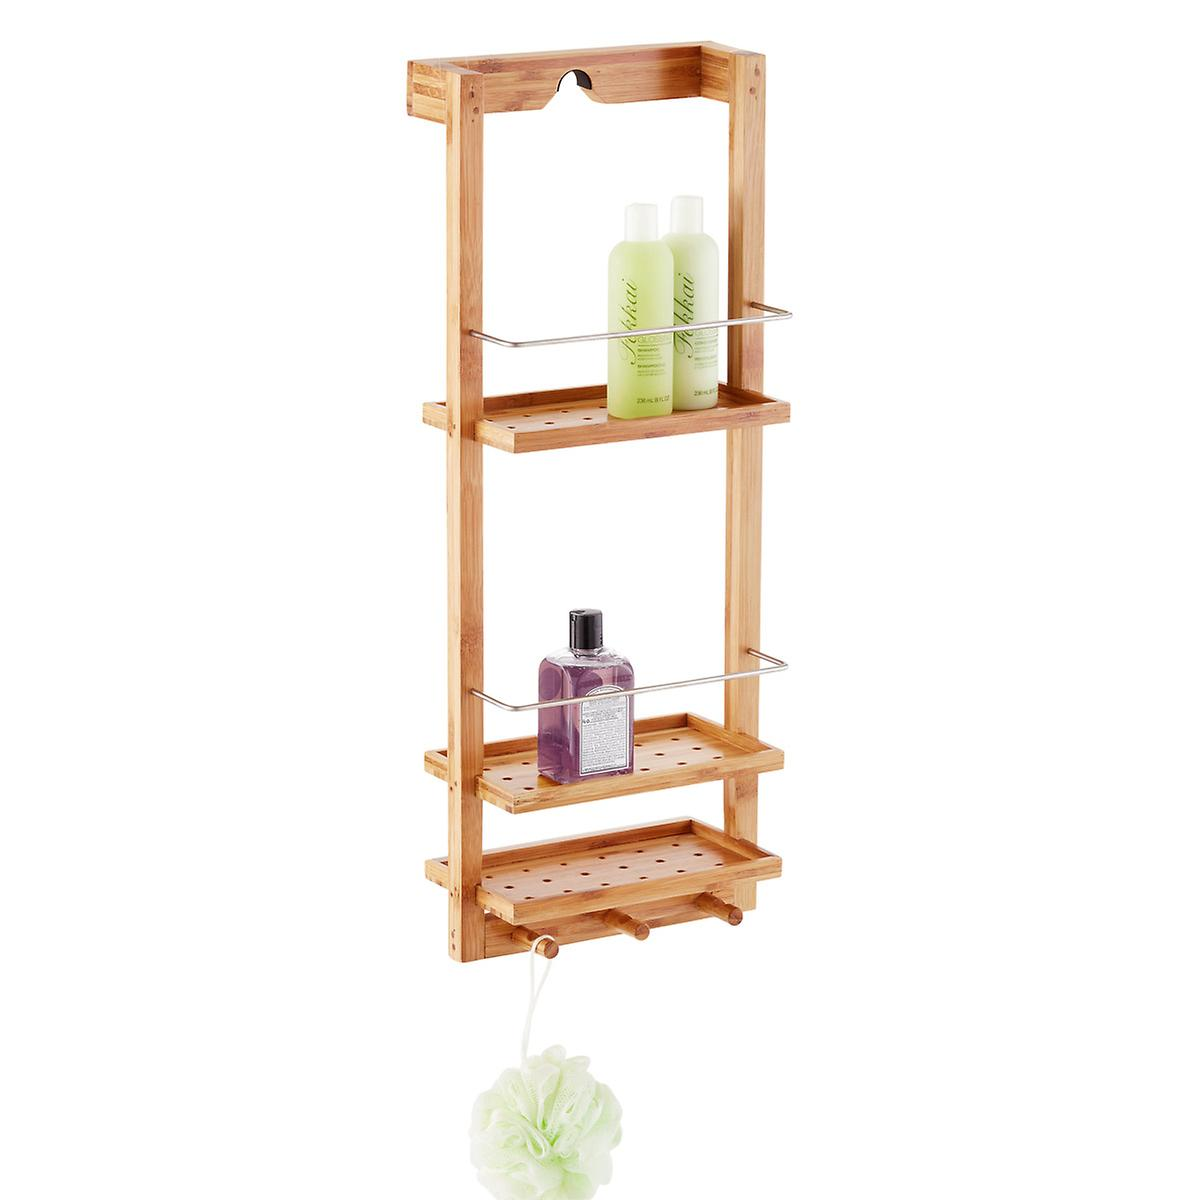 Zen 3-Tier Shower Caddy | The Container Store